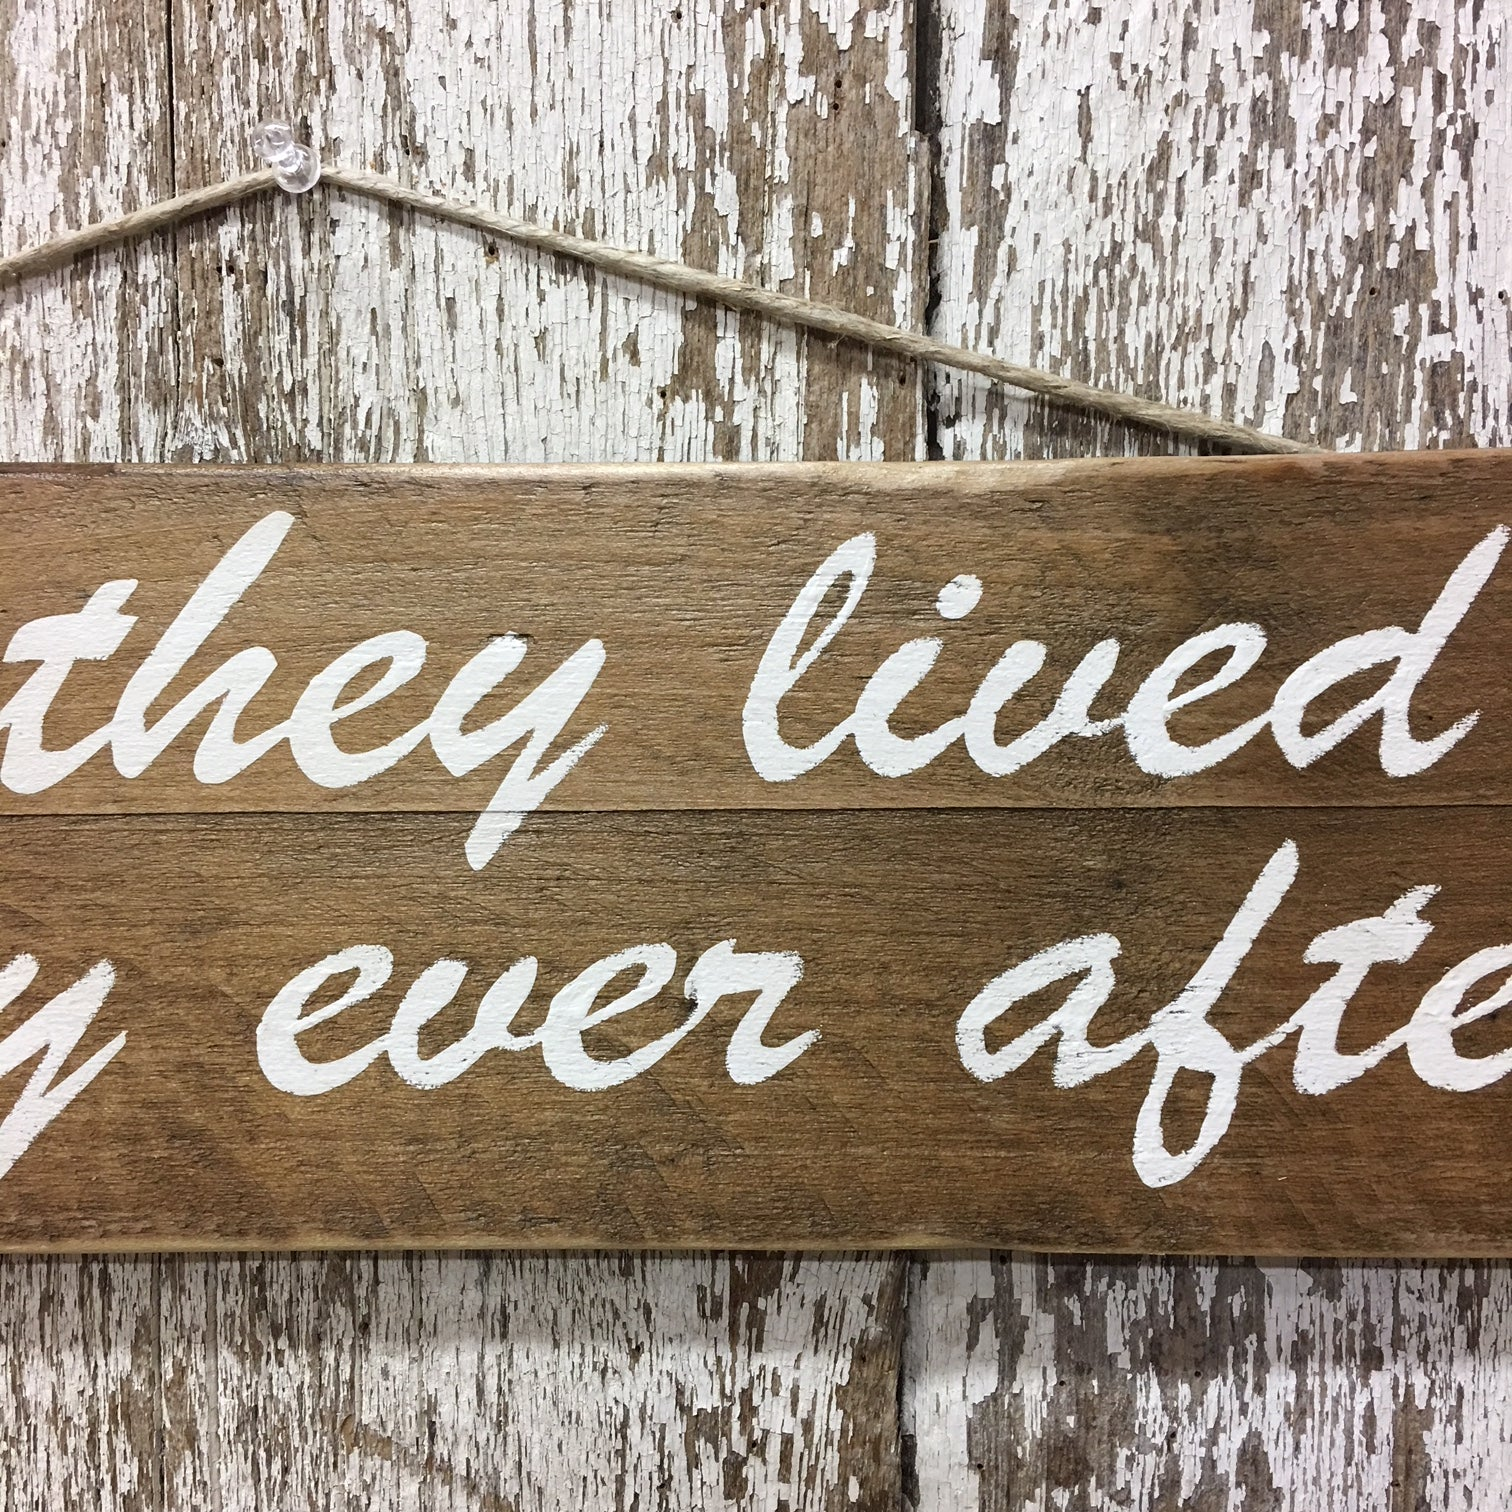 wedding decor ideas rustic cool best gifts happily ever after sign